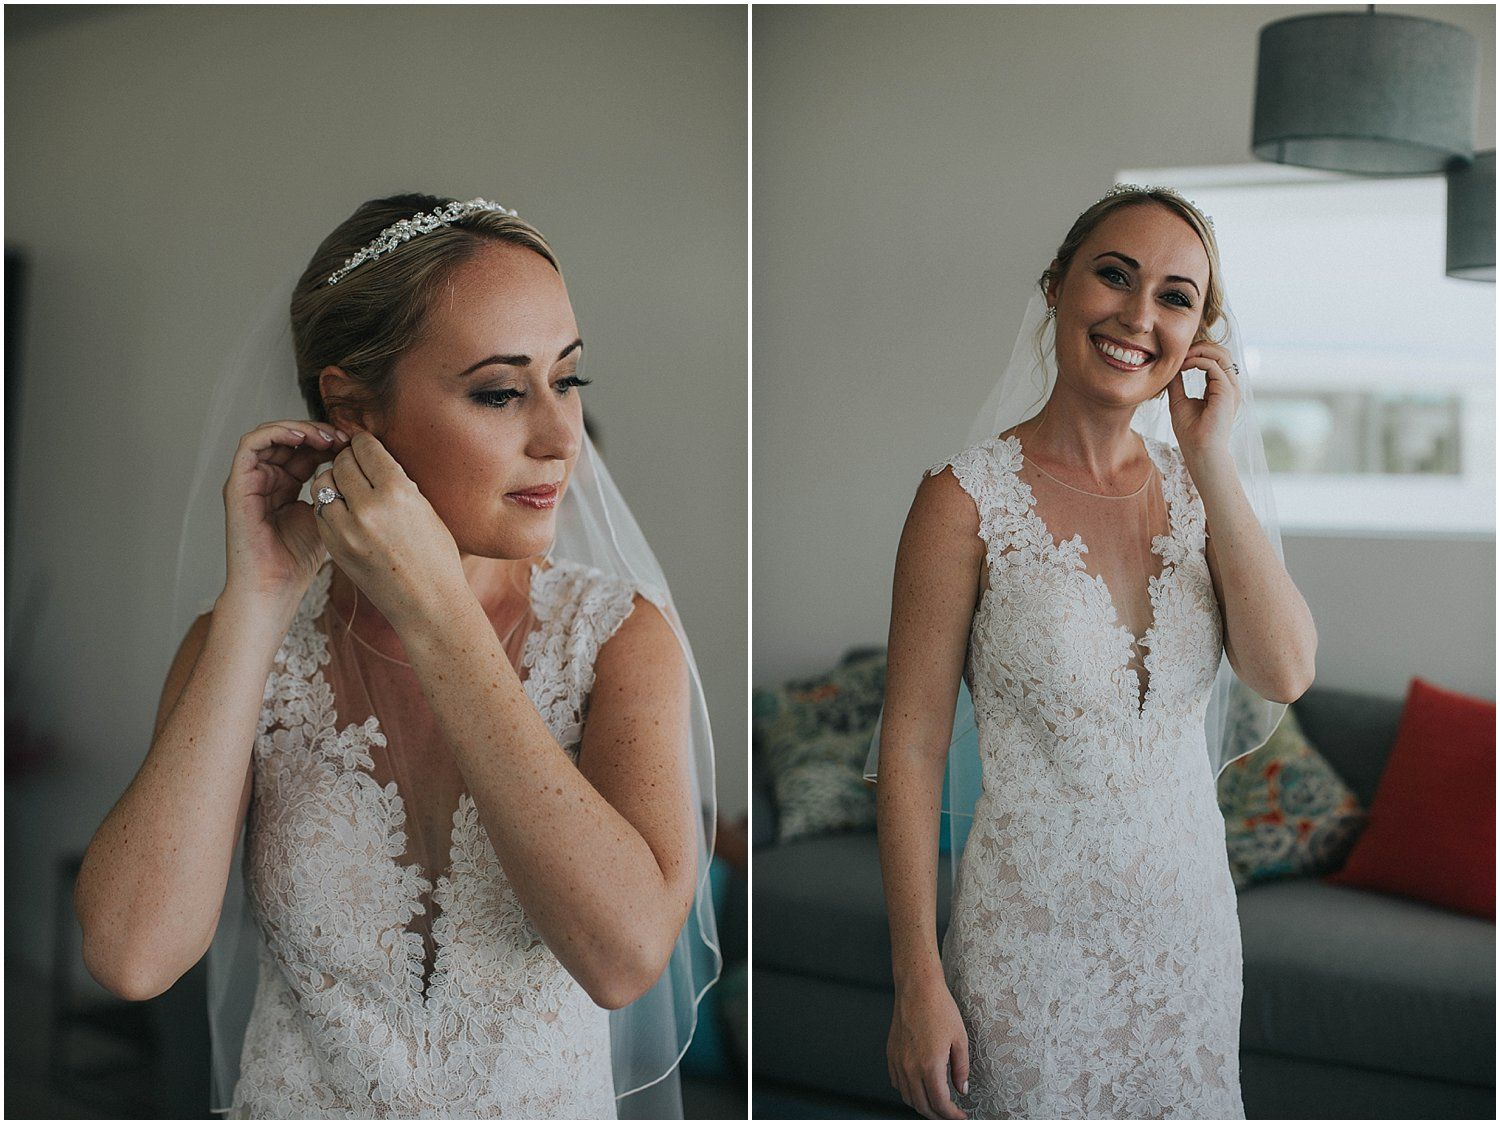 gorgeous bridal makeup and hair by red lane spa. photo